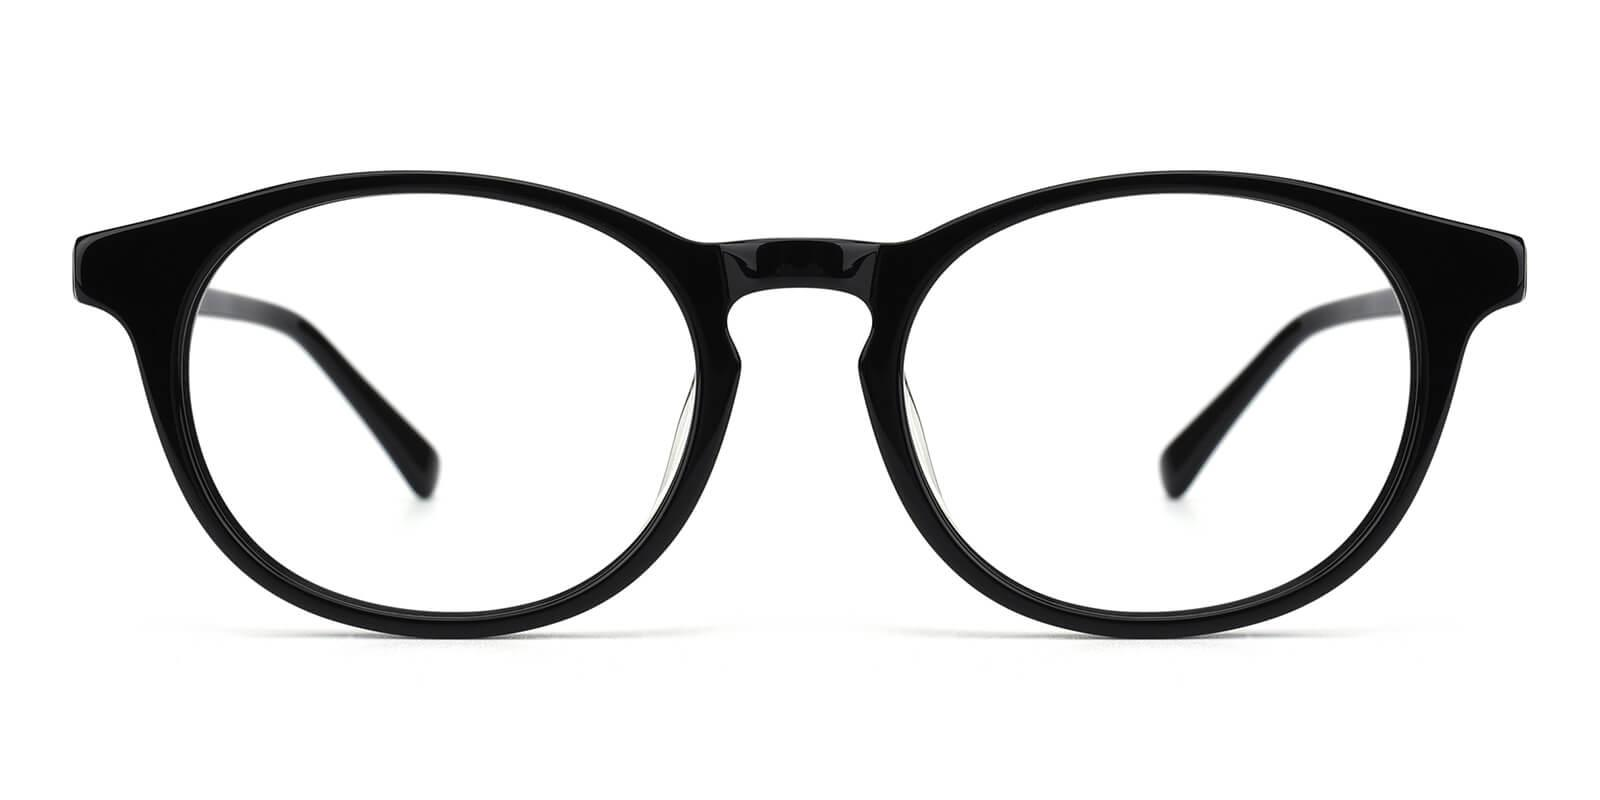 Concept-Black-Oval-Acetate-Eyeglasses-additional2